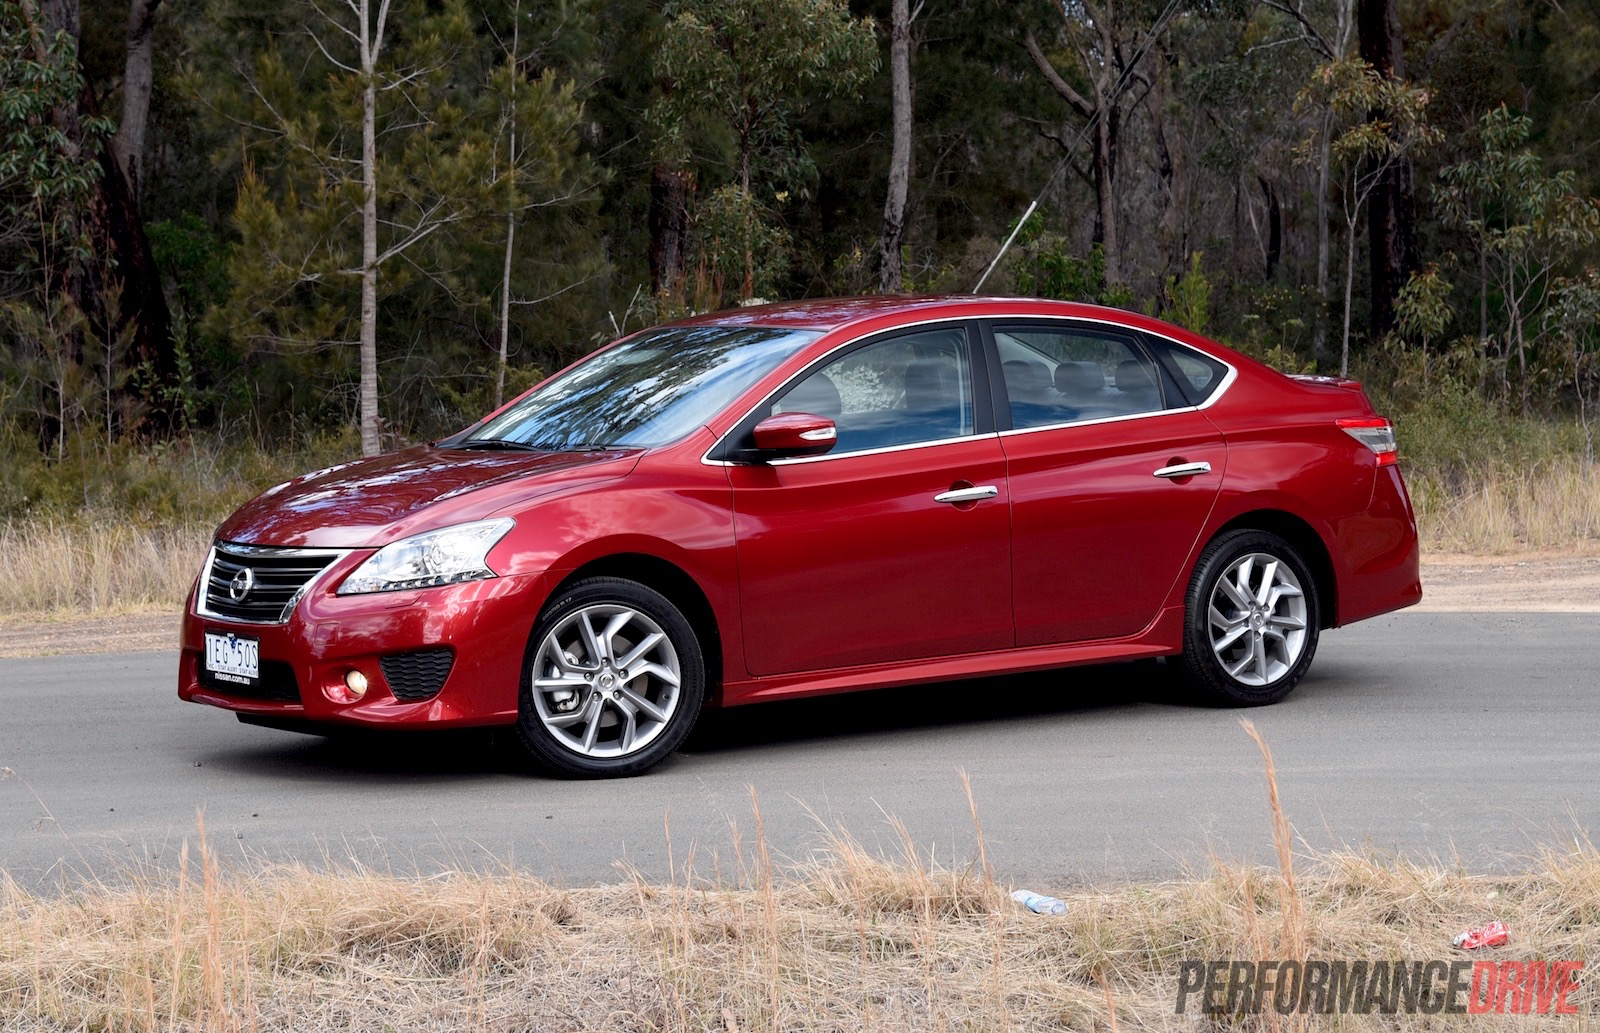 2015 Nissan Pulsar SSS sedan review (video) | PerformanceDrive